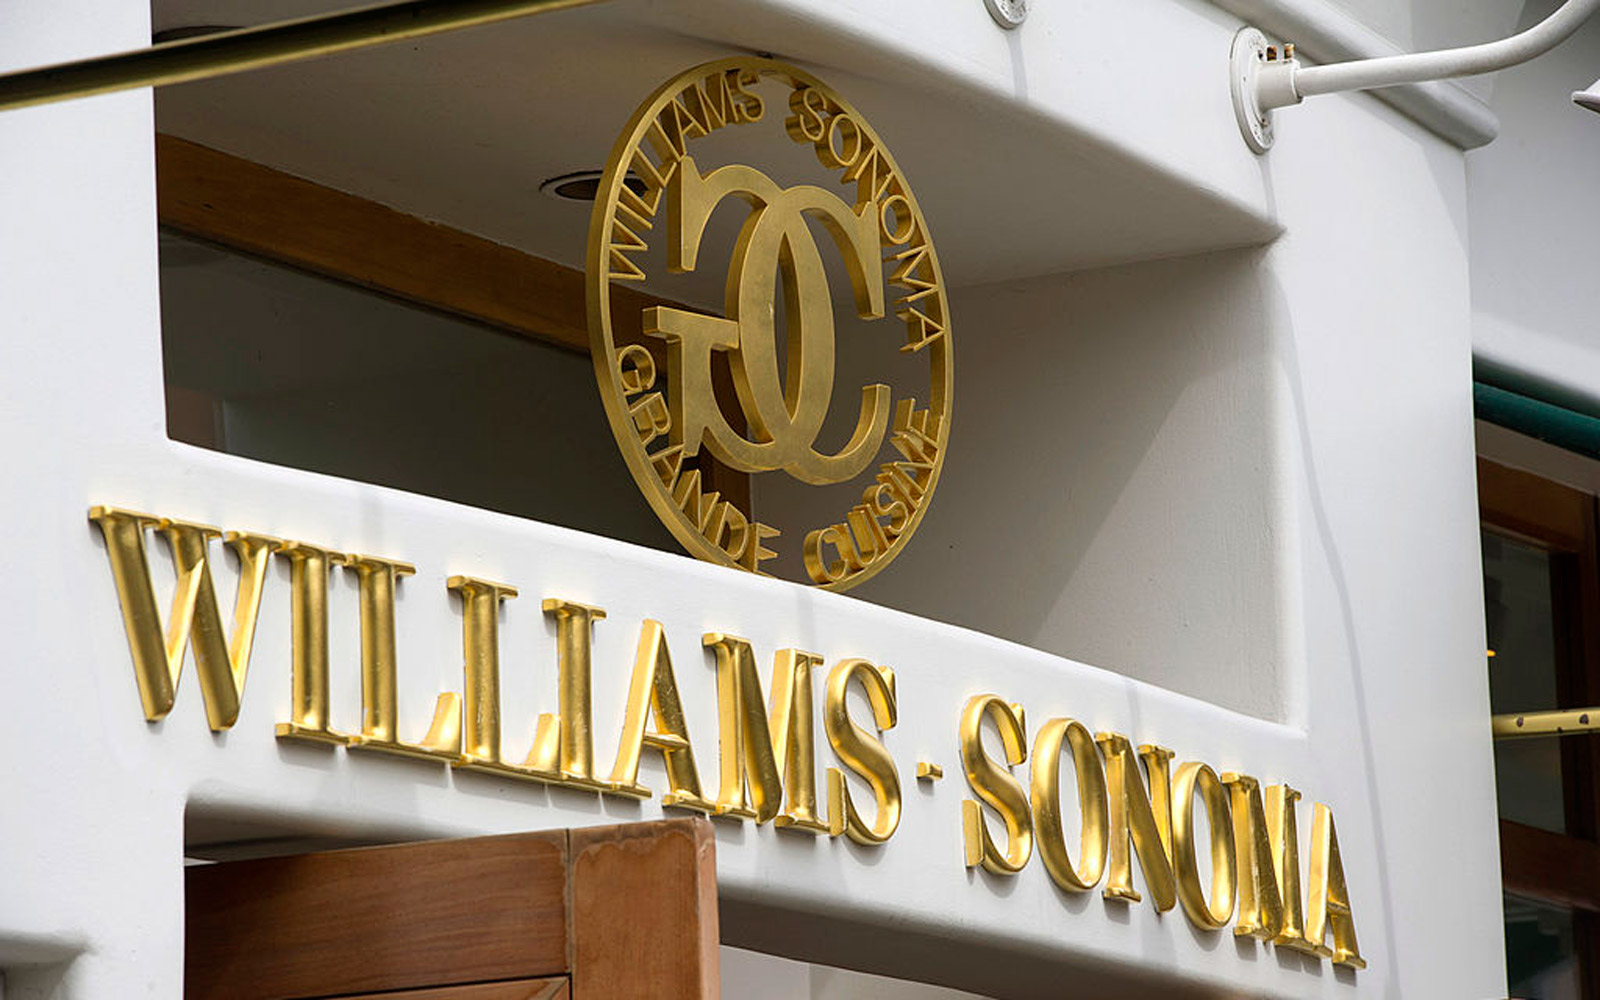 Exteriors Of A Williams-Sonoma Inc Store Ahead Of Earnings